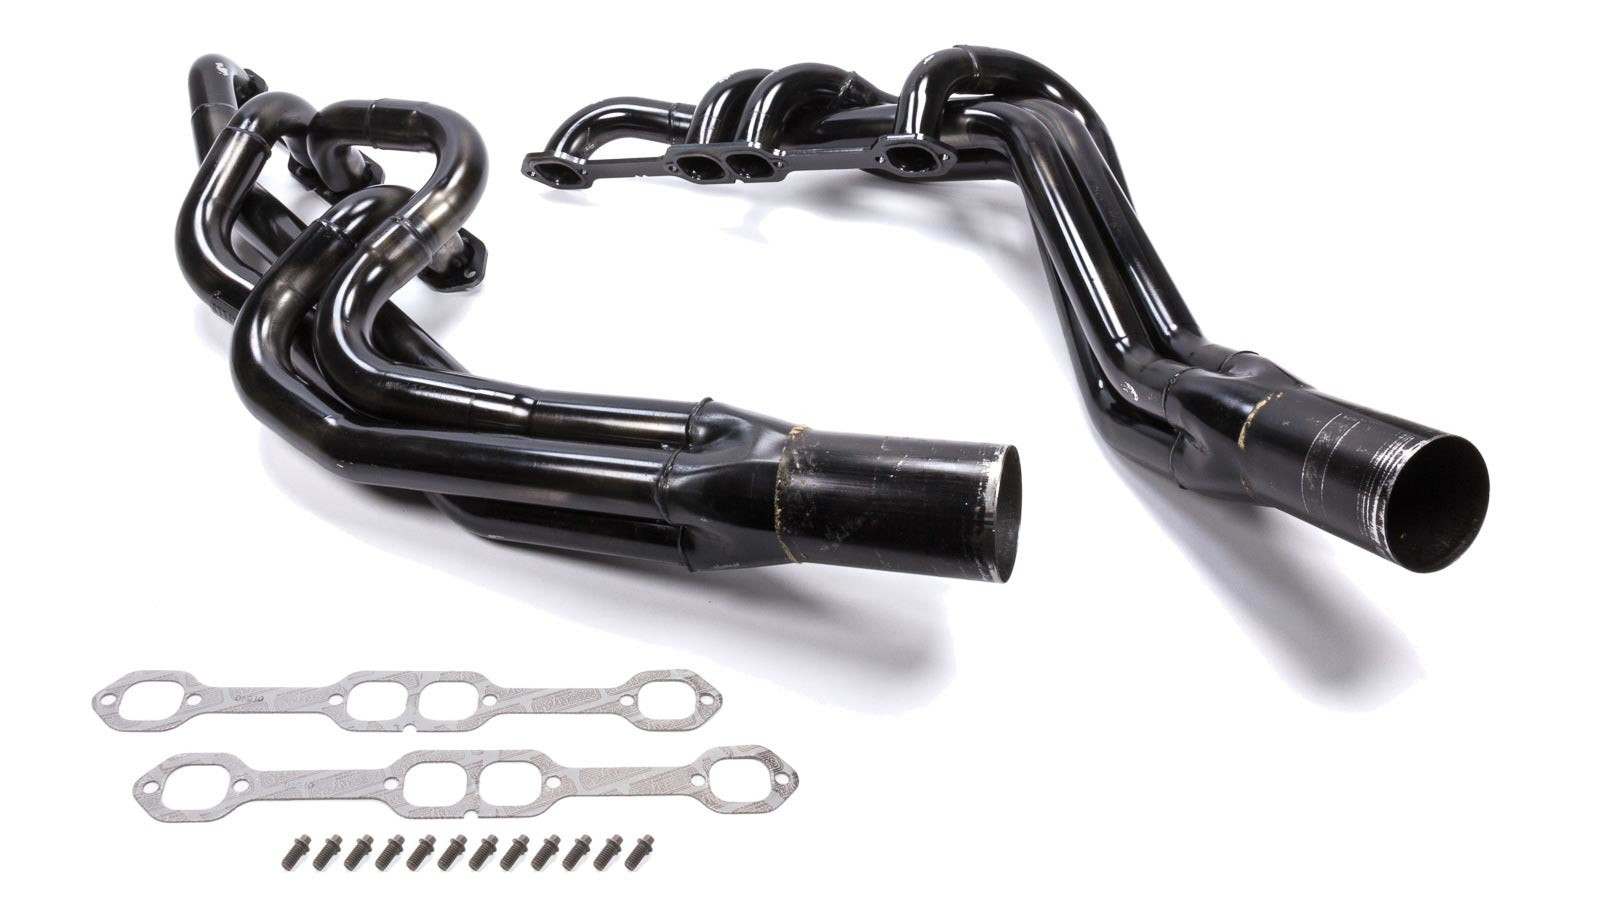 Crossover Headers Chevy 18 Degree 1-3/4 - 1-7/8